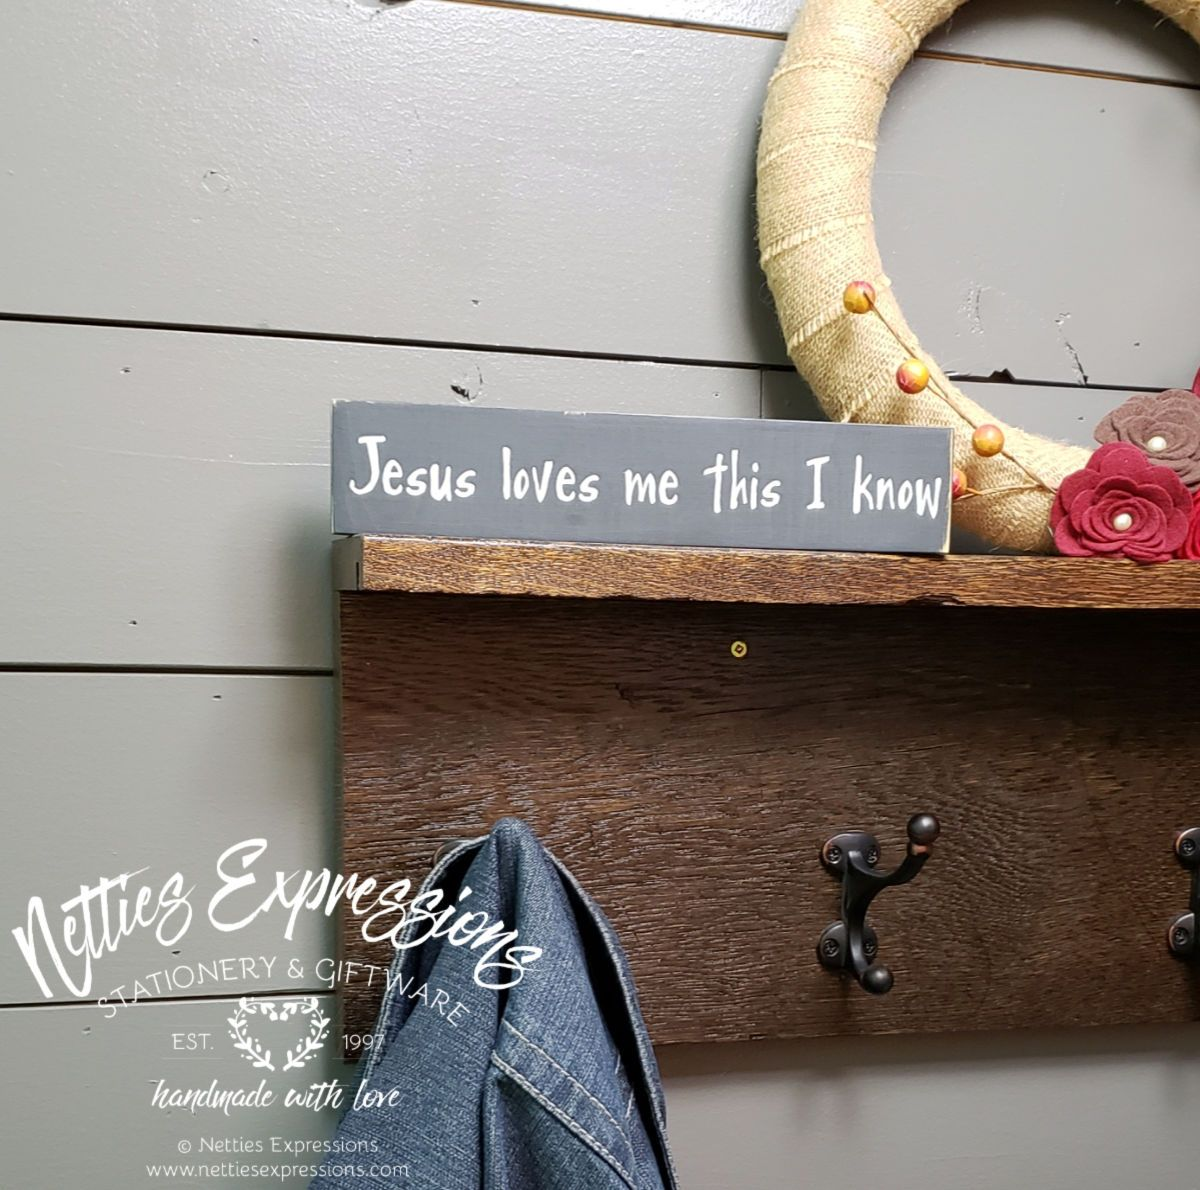 Jesus loves me this I know - Rustic Wood Sign - Netties Expressions